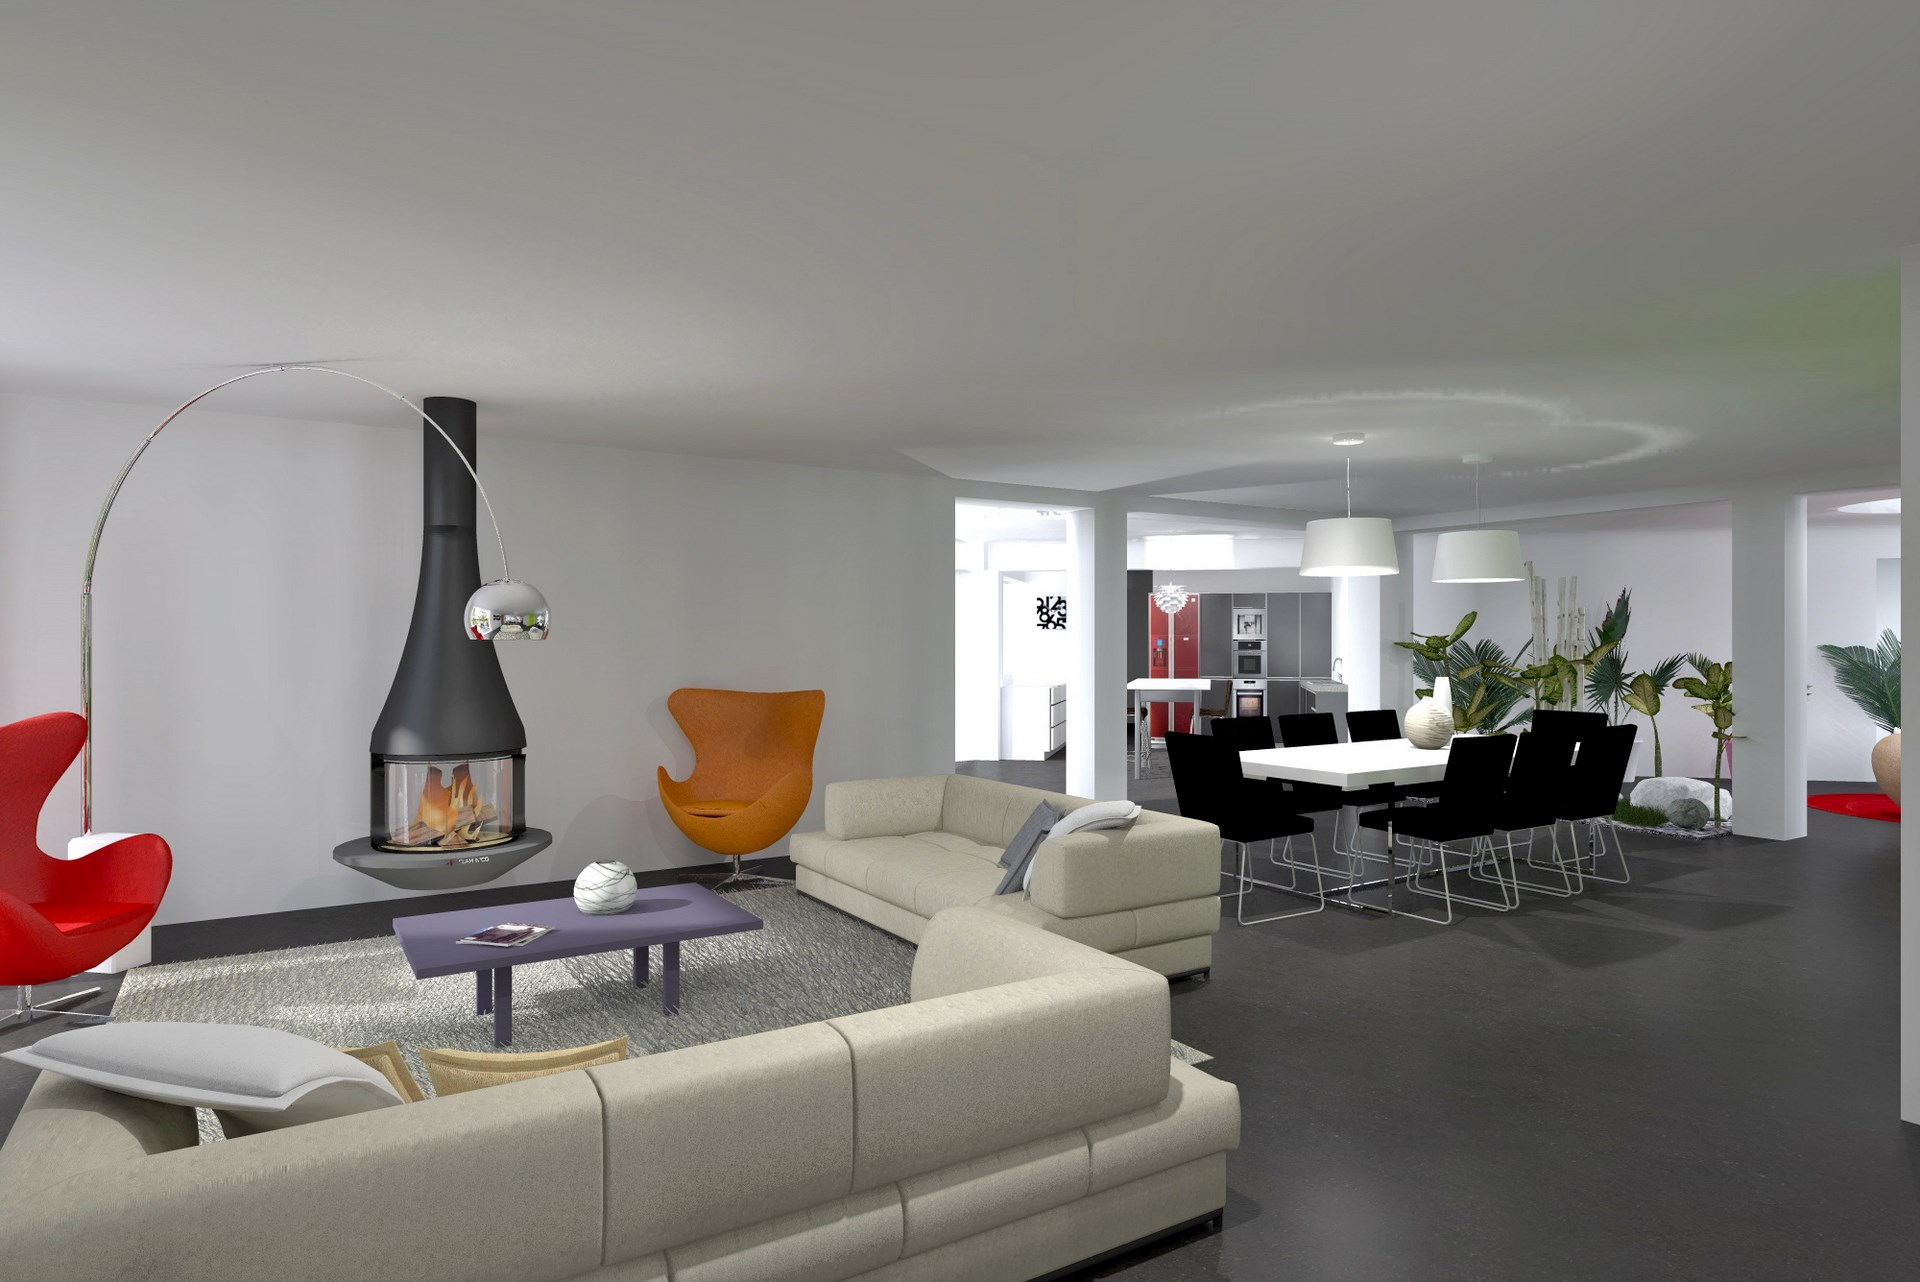 Interieur grande maison moderne maison moderne - Amenagement interieur maison contemporaine ...